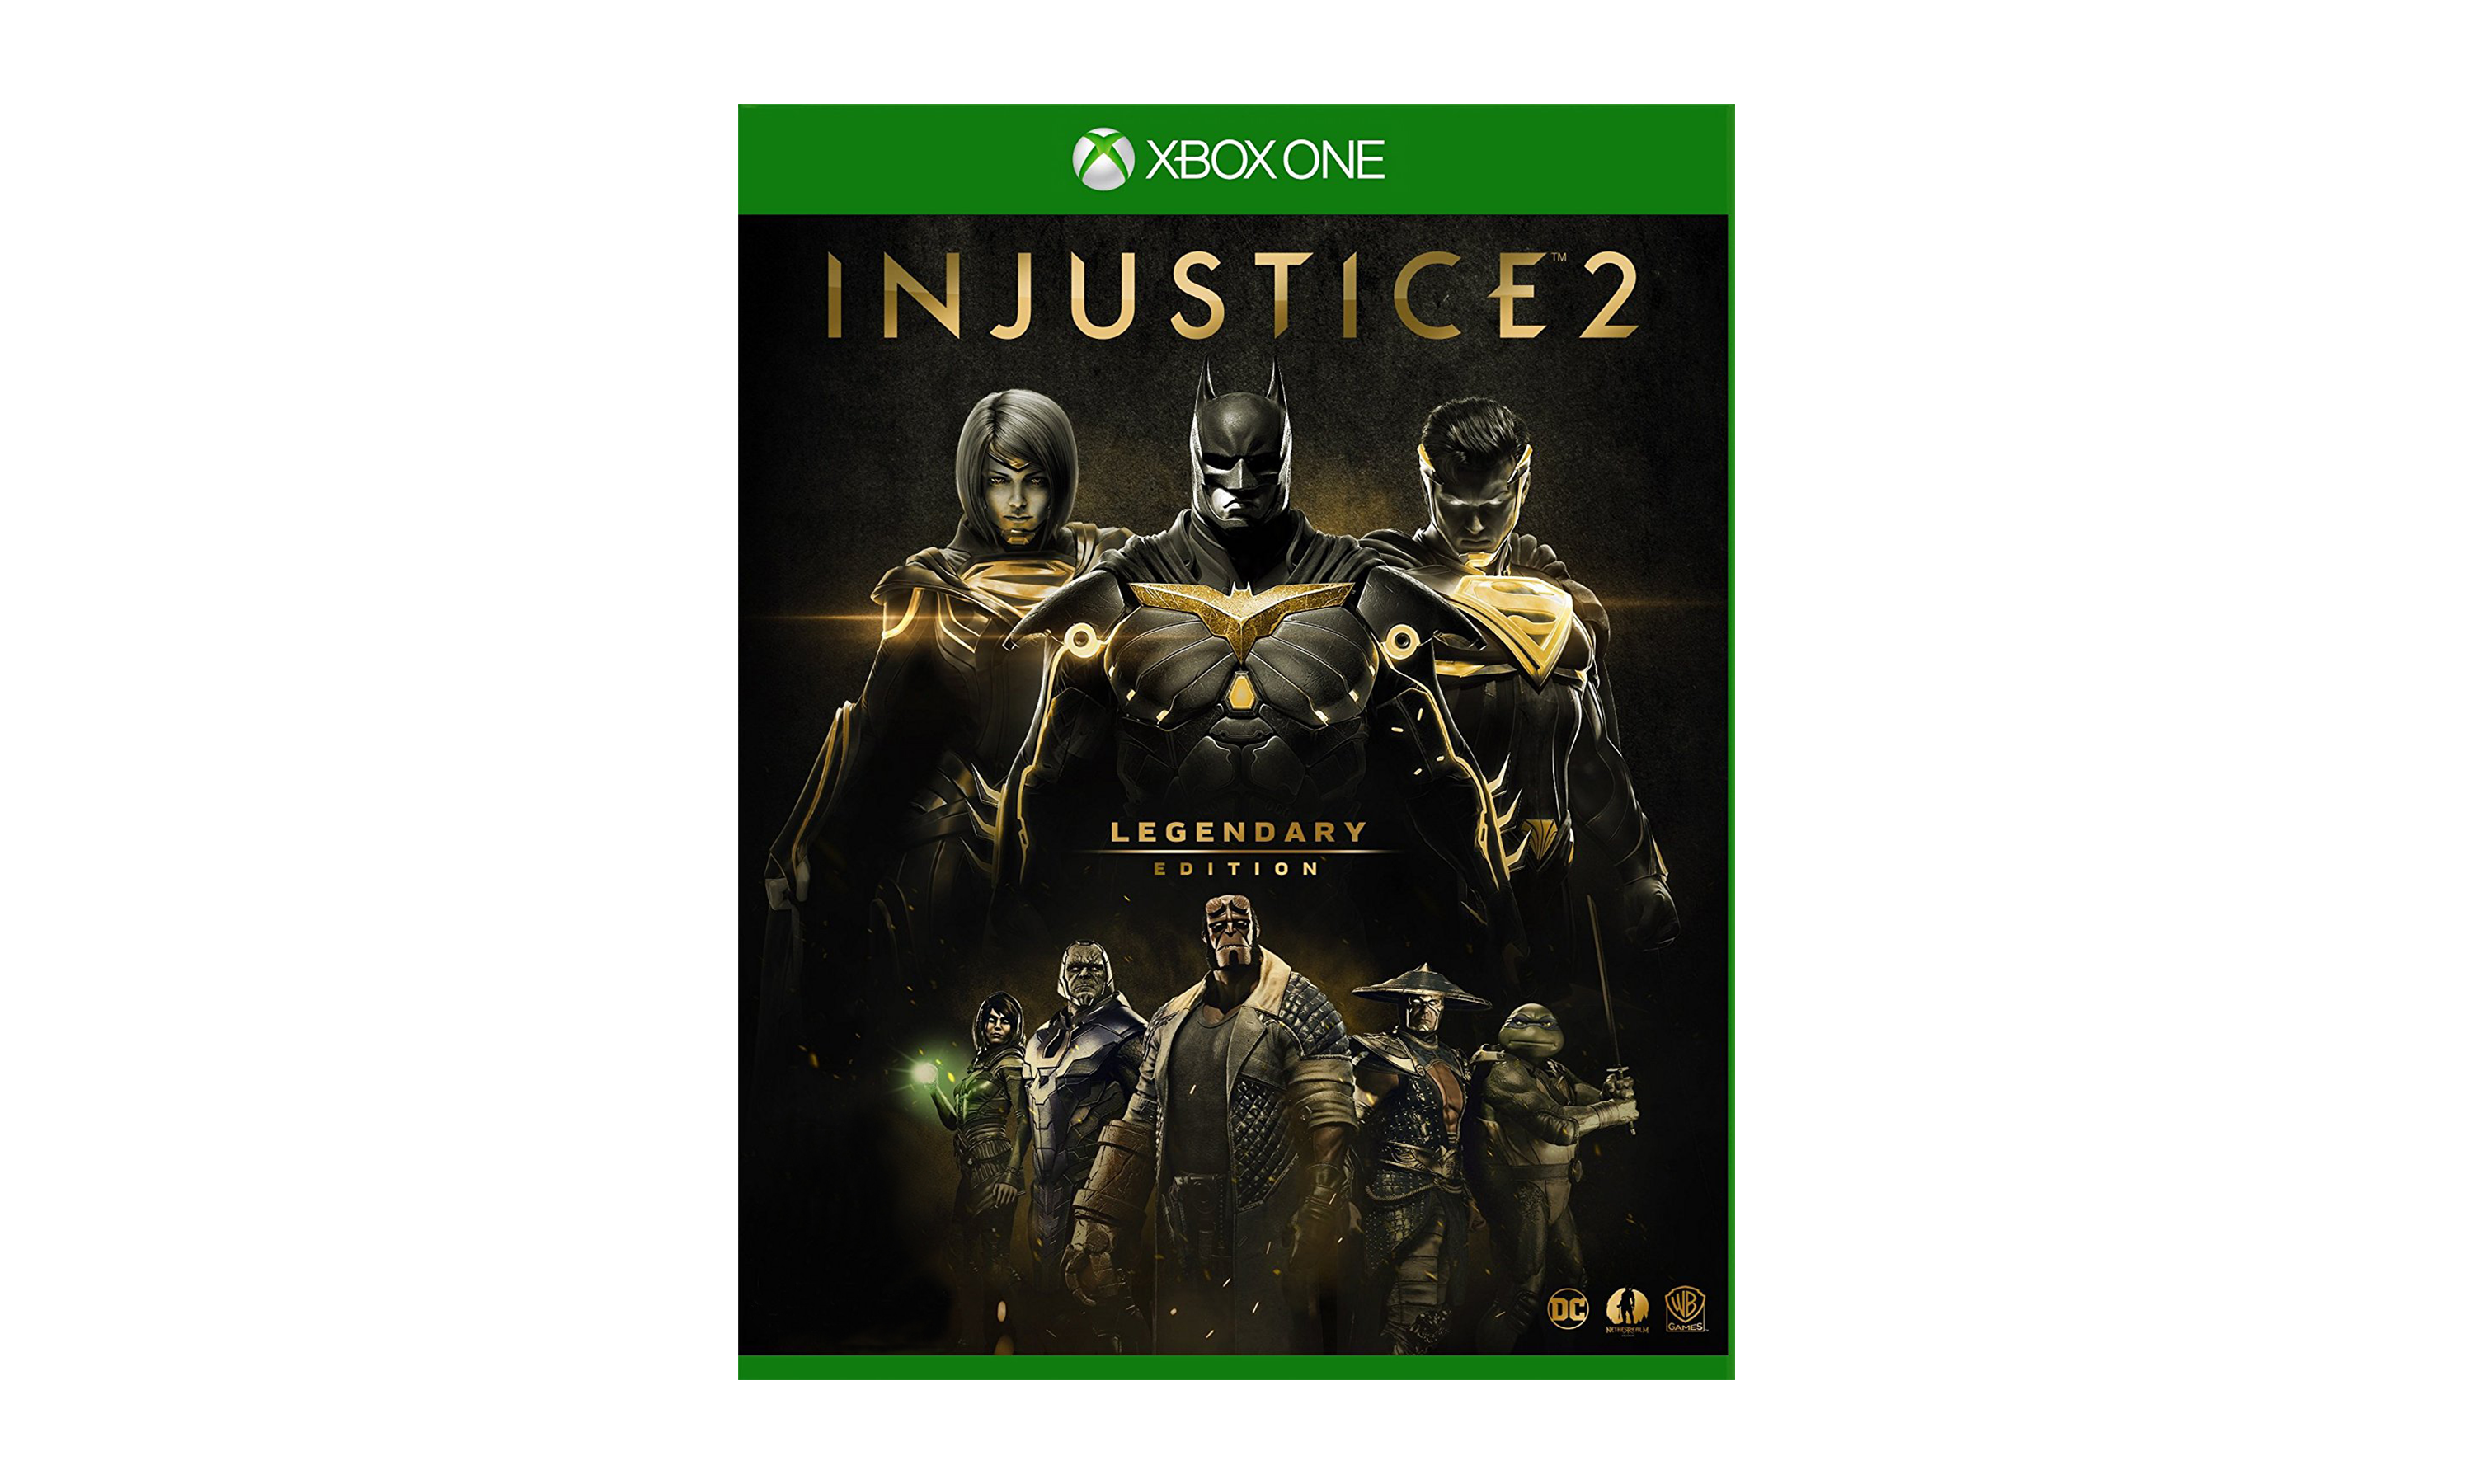 Buy Injustice 2 for Xbox One - Microsoft Store